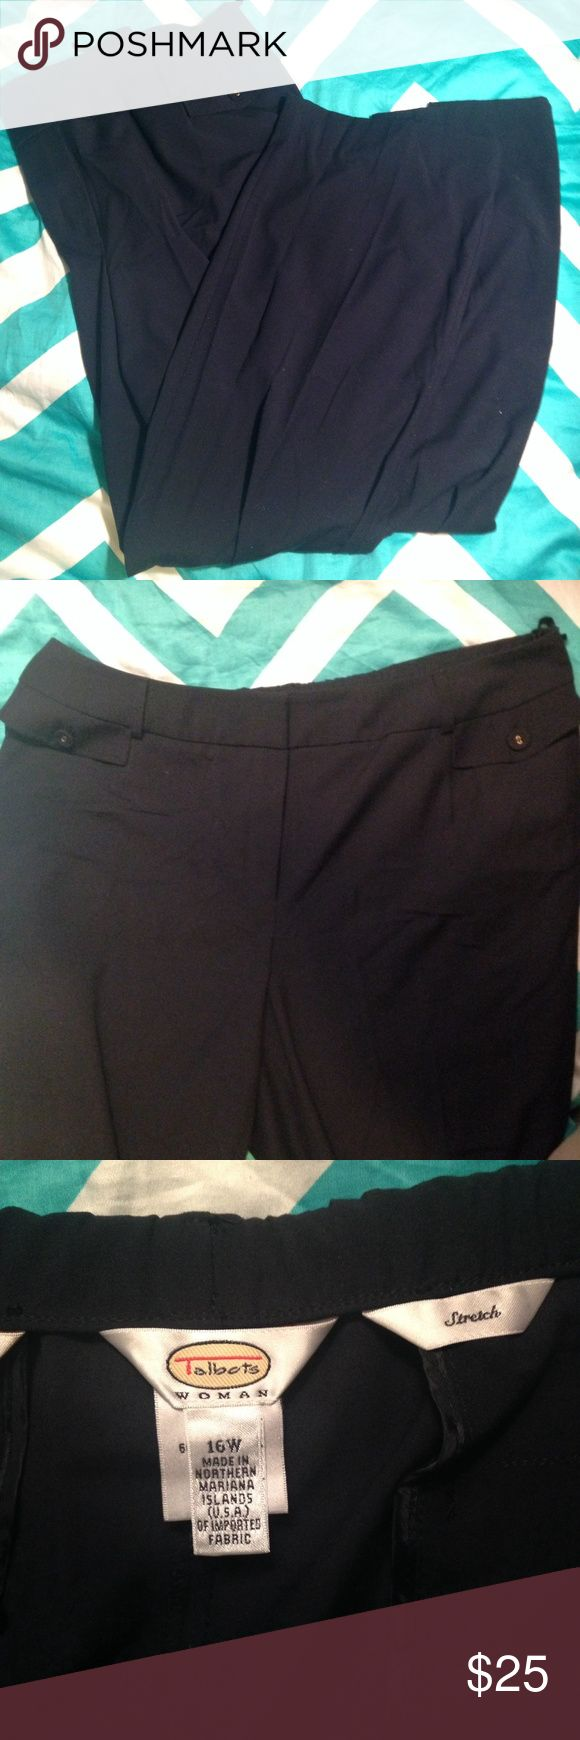 """Talbots Navy Dress Pants Talbots Dress Pants in Navy 🌟Condition: Excellent used condition.  📐Measurements: Approx 19"""" at waist laid flat and 29"""" inseam.  👗Style: Dress pants with front zip and decorative pocket flaps at front 💎Material: Polyester, Viscose, Spandex 📝Additional Info: Machine wash Talbots Pants Trousers"""